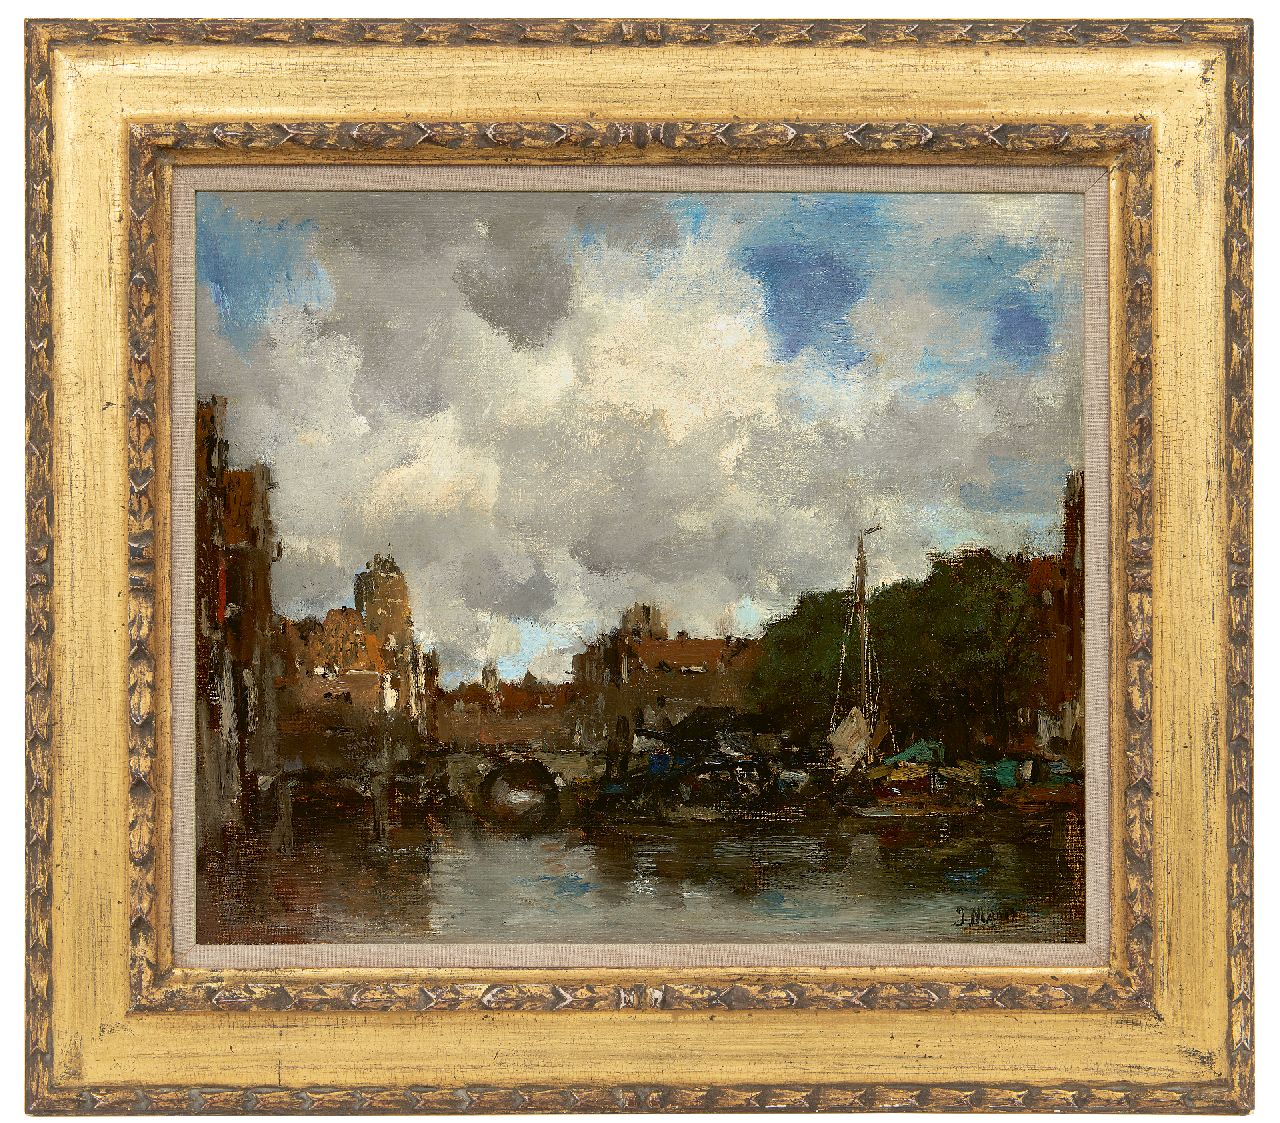 Maris J.H.  | Jacobus Hendricus 'Jacob' Maris | Paintings offered for sale | A Dutch harbour town (Dordrecht), oil on canvas 41.5 x 49.0 cm, signed l.r. and to be dated ca. 1890